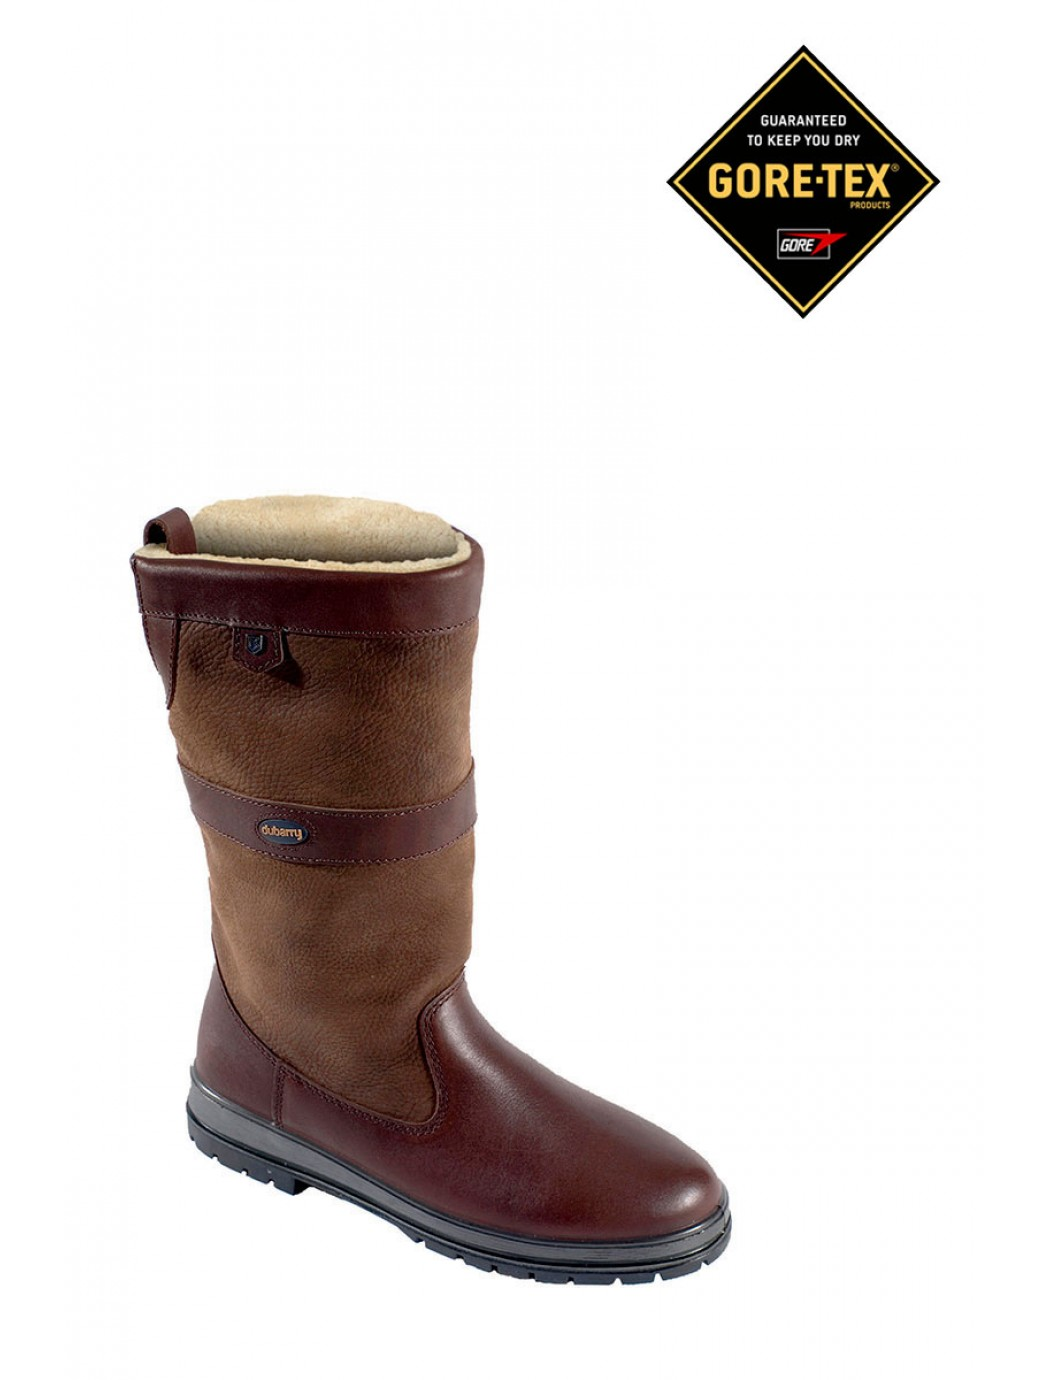 donegal-country-boots-walnut